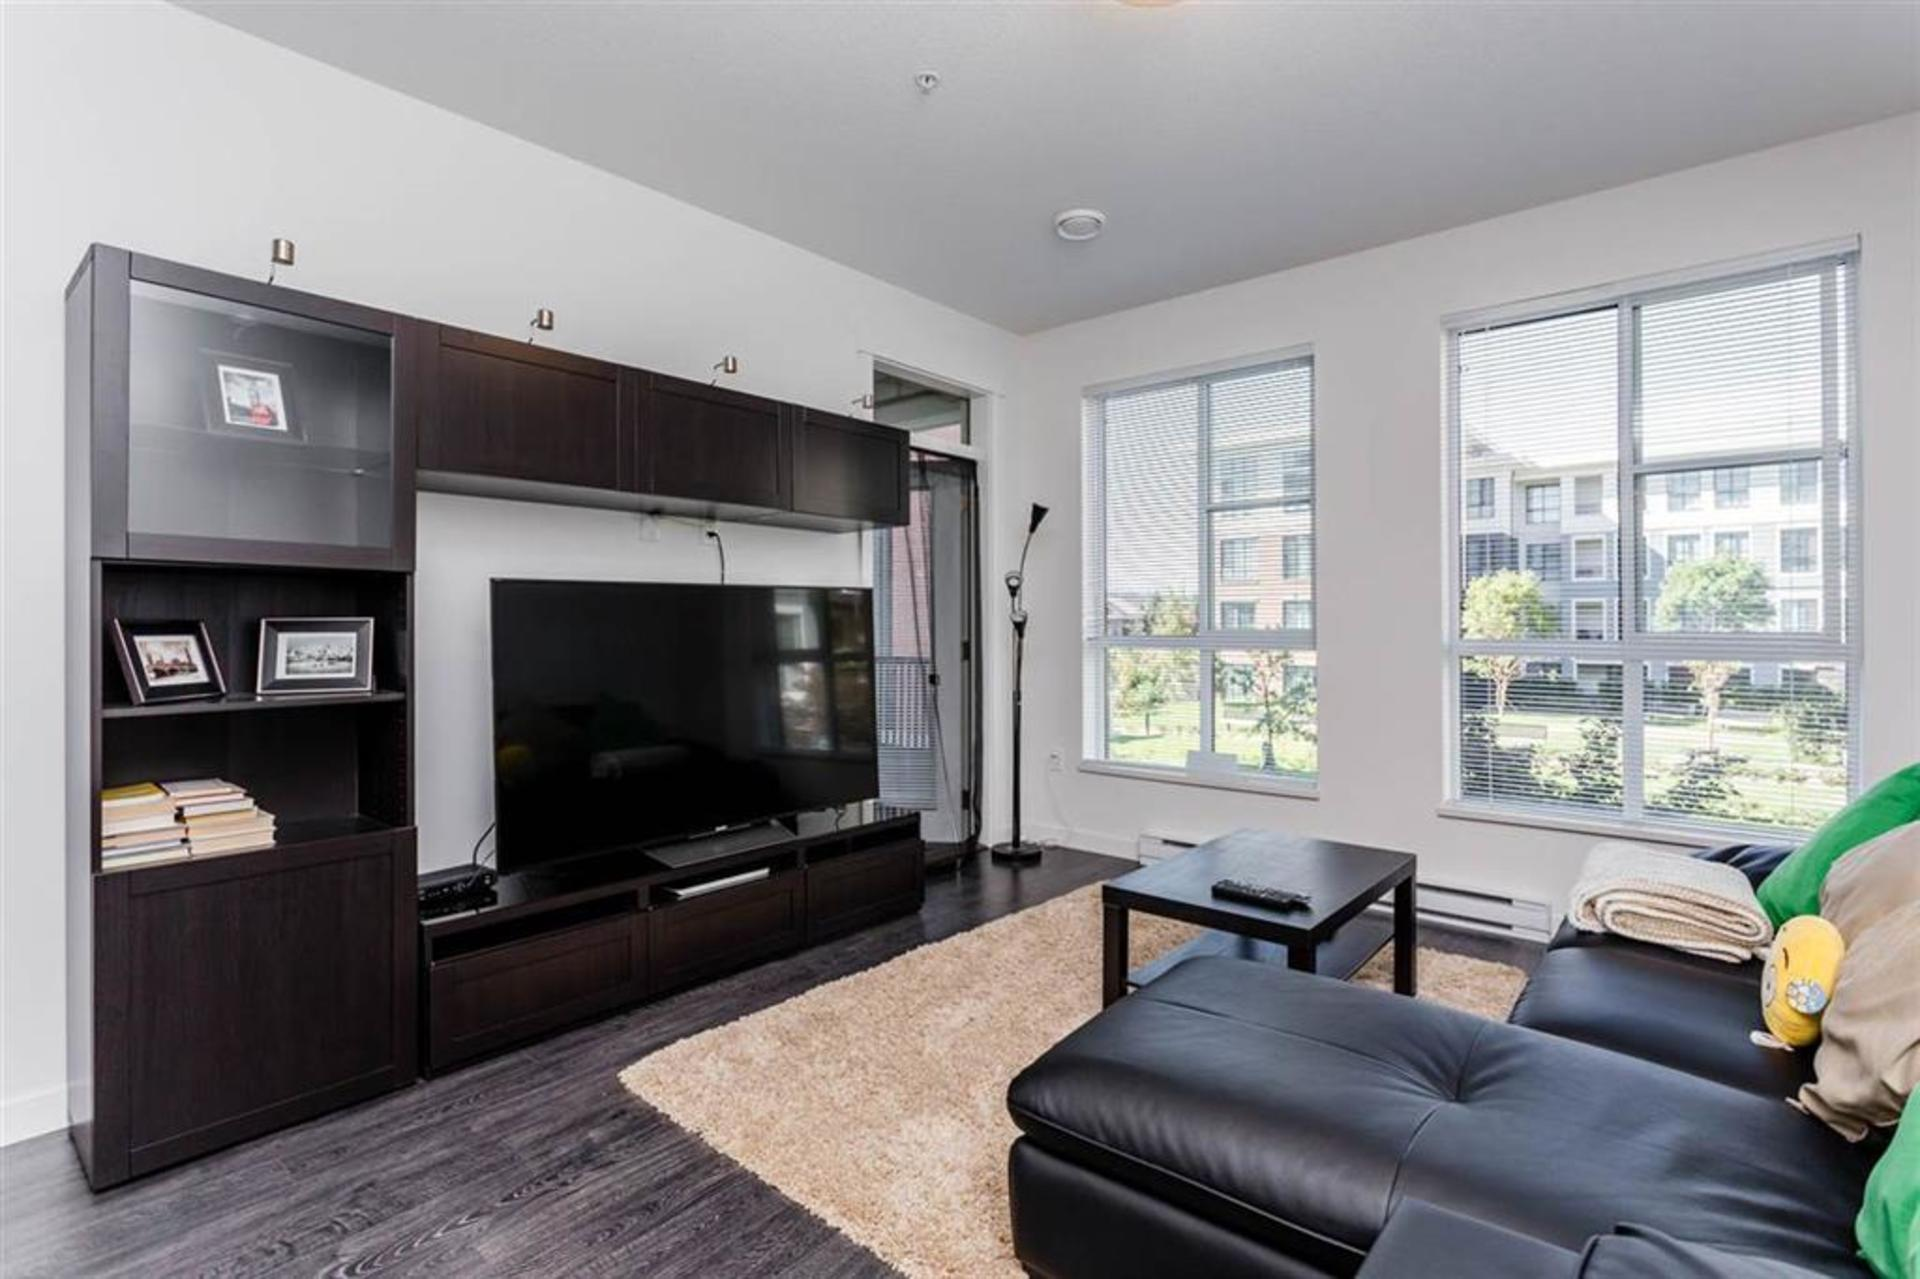 262230120-6 at 230 - 15168 33 Avenue, Morgan Creek, South Surrey White Rock